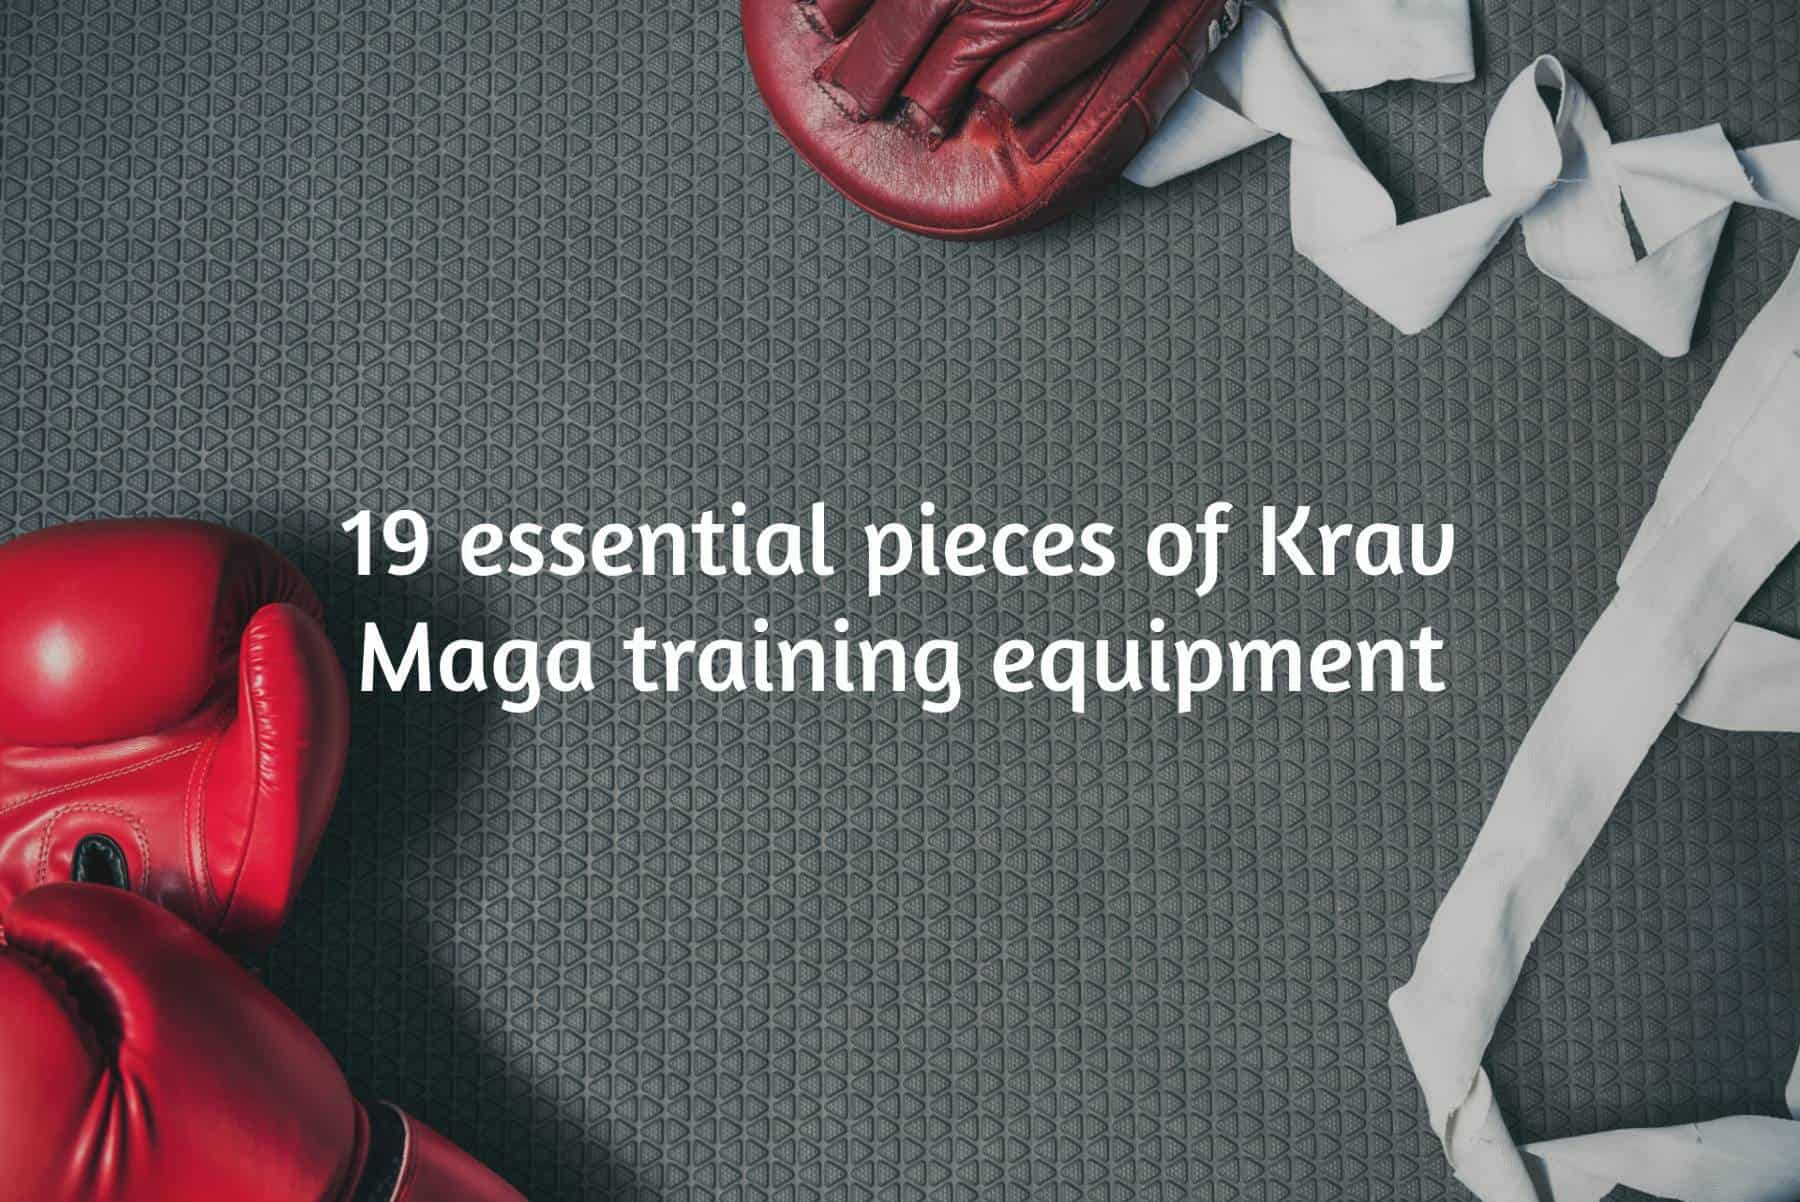 Guide to the Krav Maga Training Equipment you'll need | 19 essentials